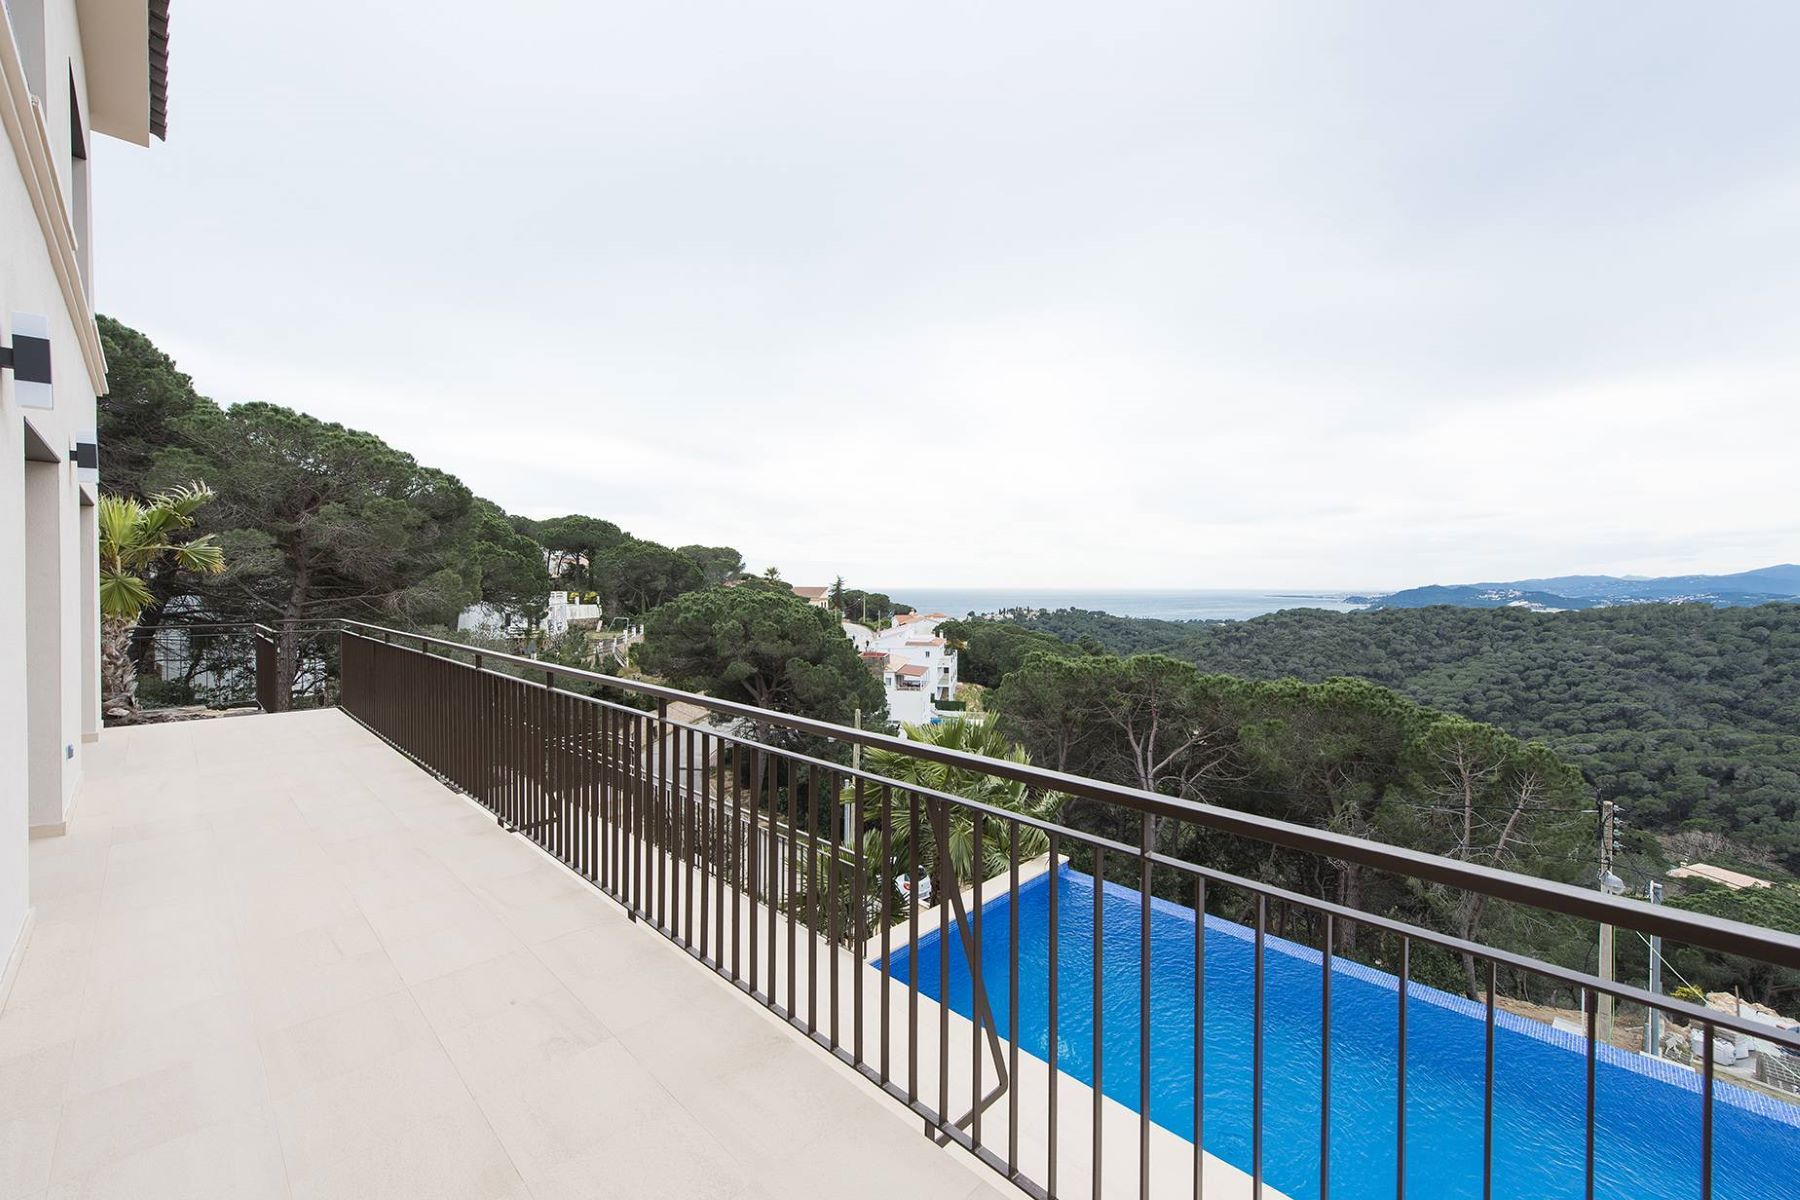 Maison unifamiliale pour l Vente à Newly built villa with fantastic sea views just 5 minutes to the beach Lloret De Mar, Costa Brava, 17310 Espagne